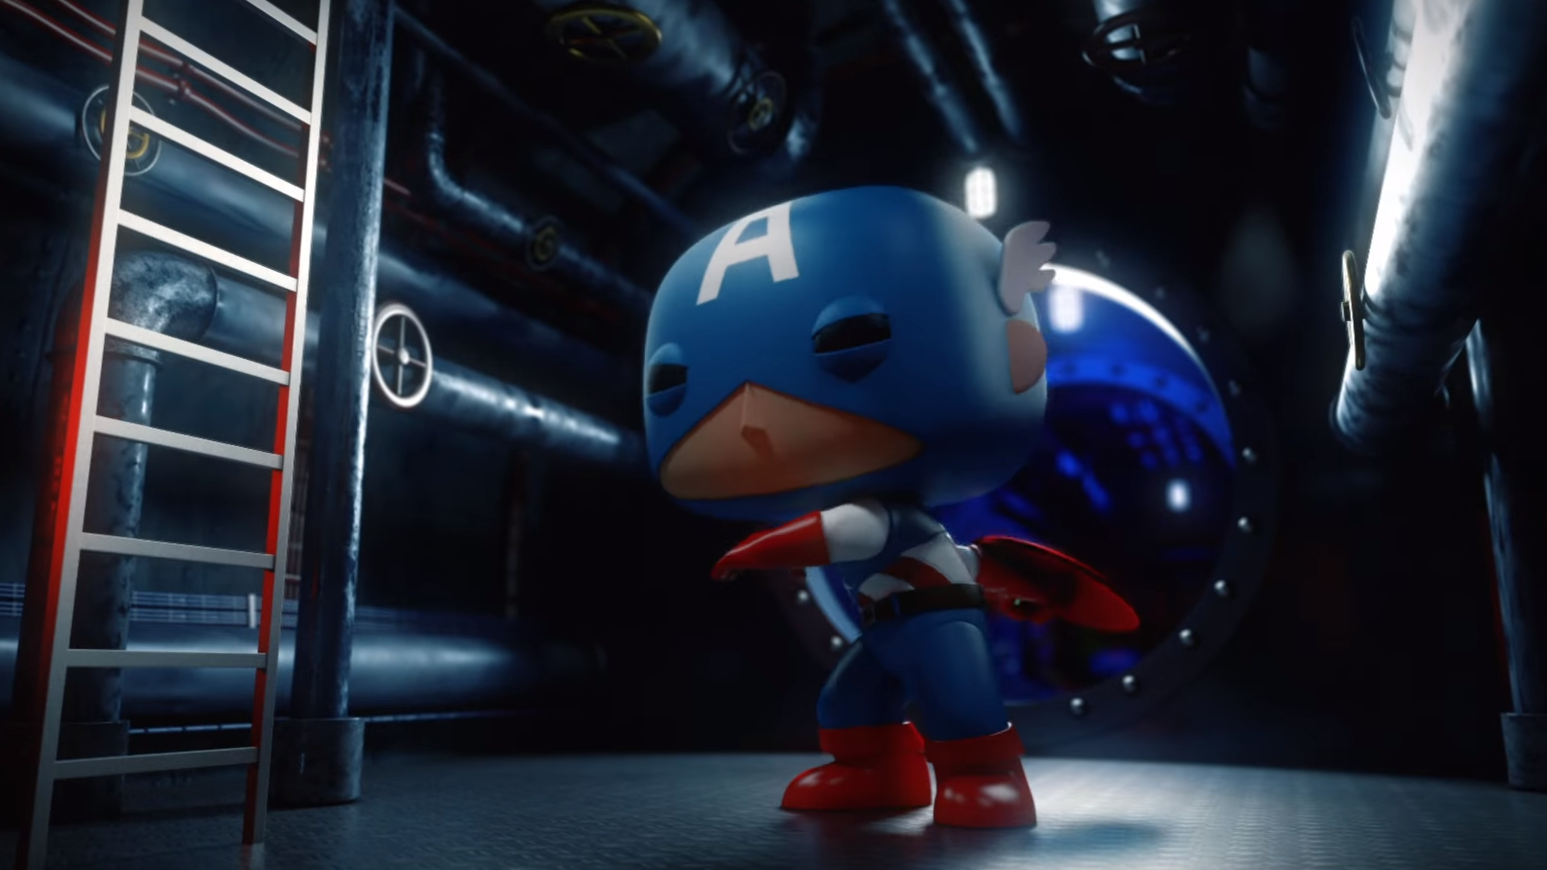 This Funko Pop Captain America Short Is Actually Amazing